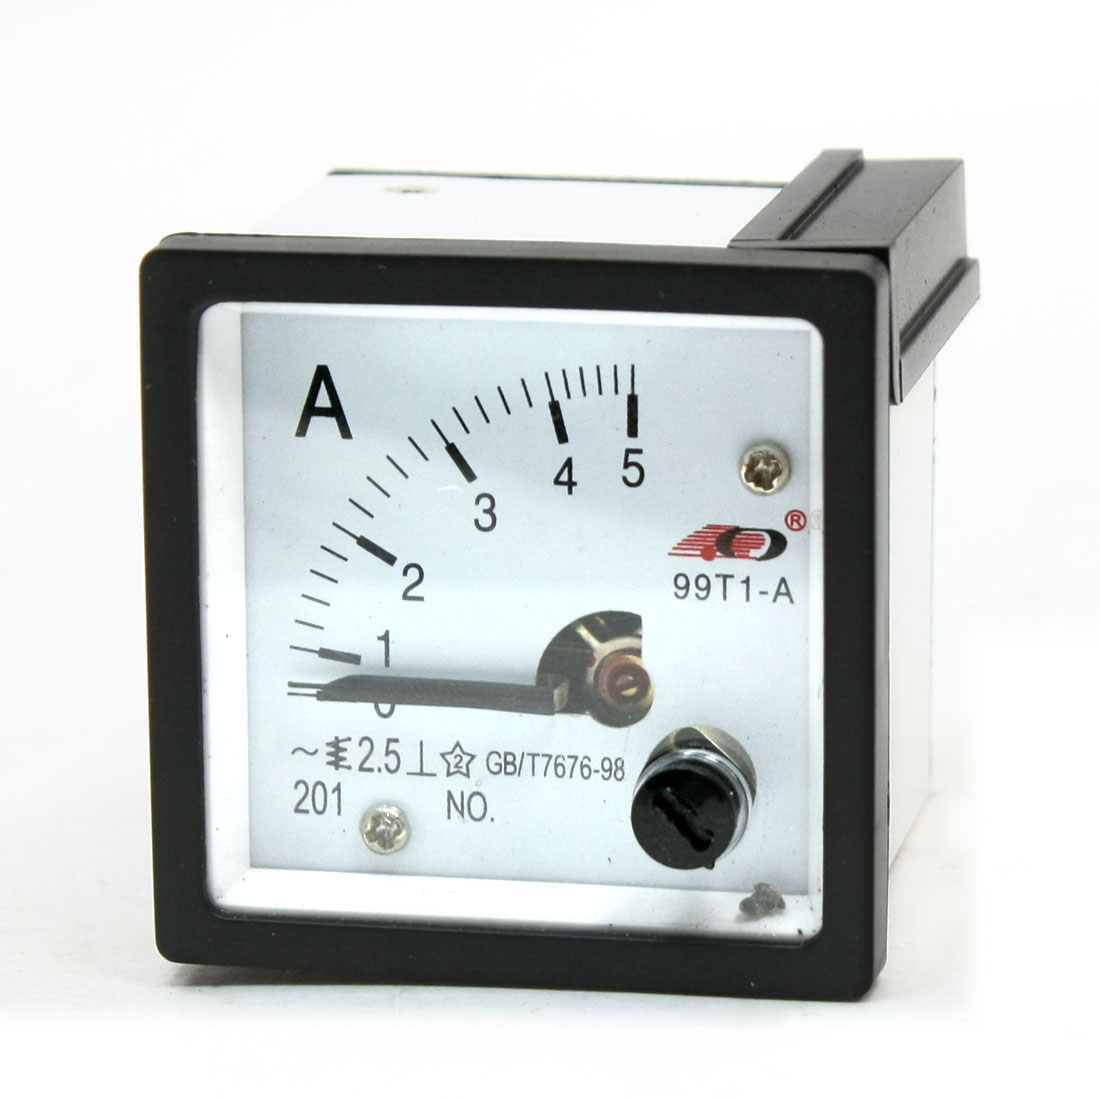 AC 0-5A Class 2.5 Square Panel Analog Meter Ammeter 99T1